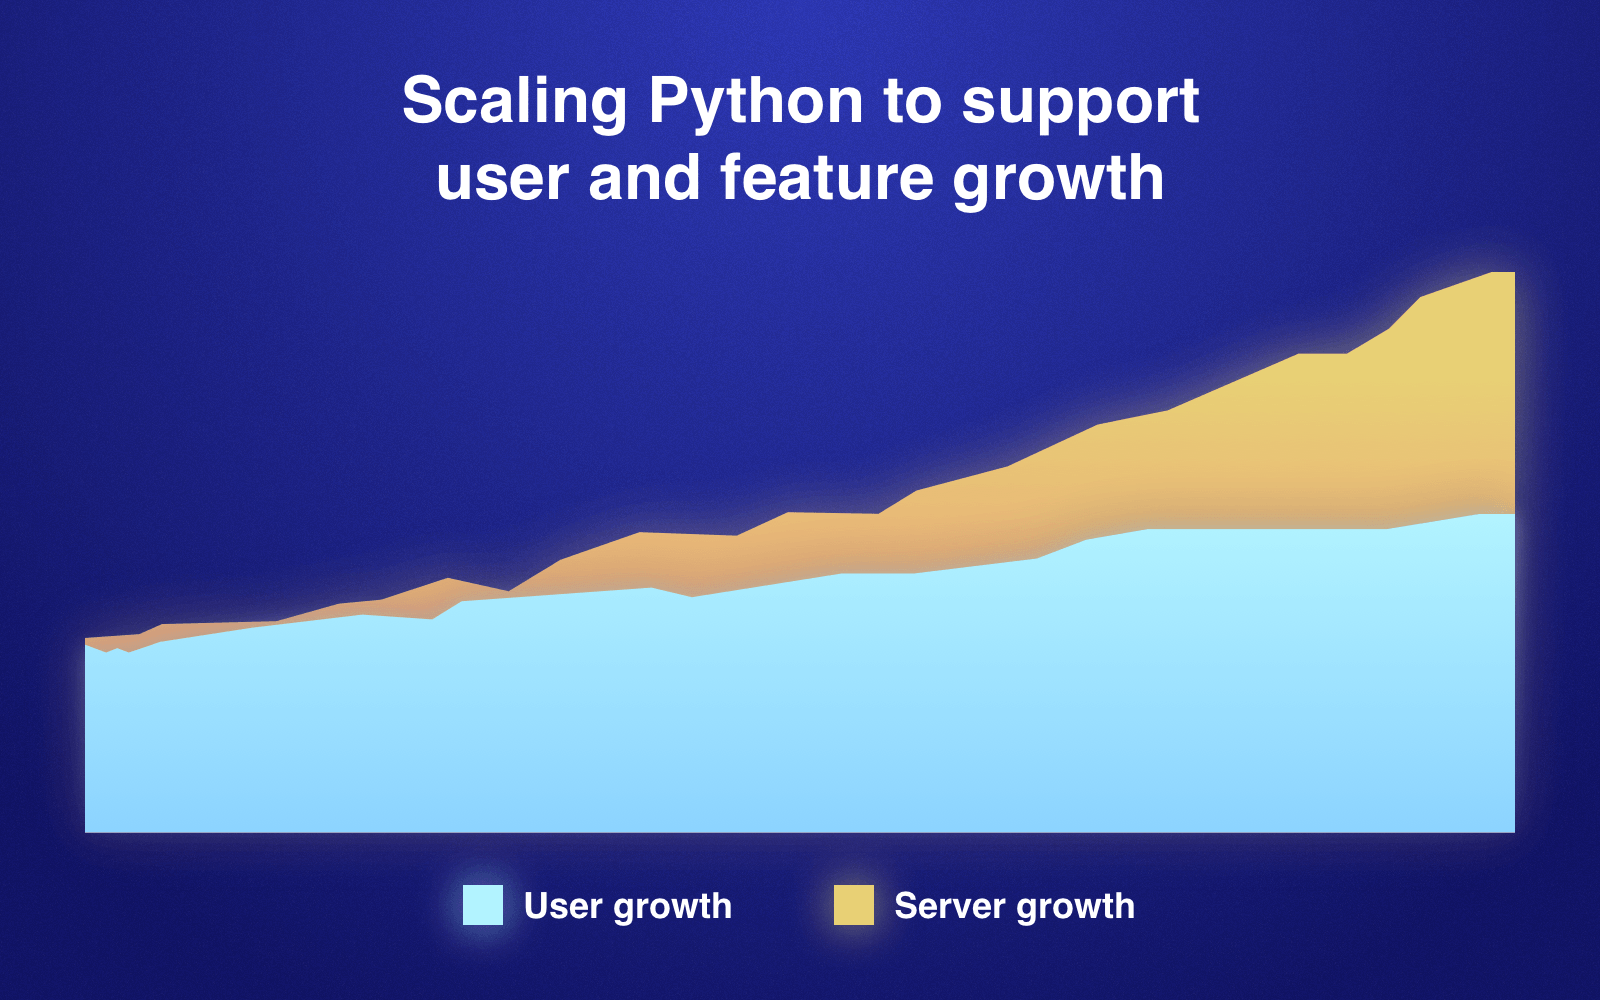 Companies that use Python: Scaling